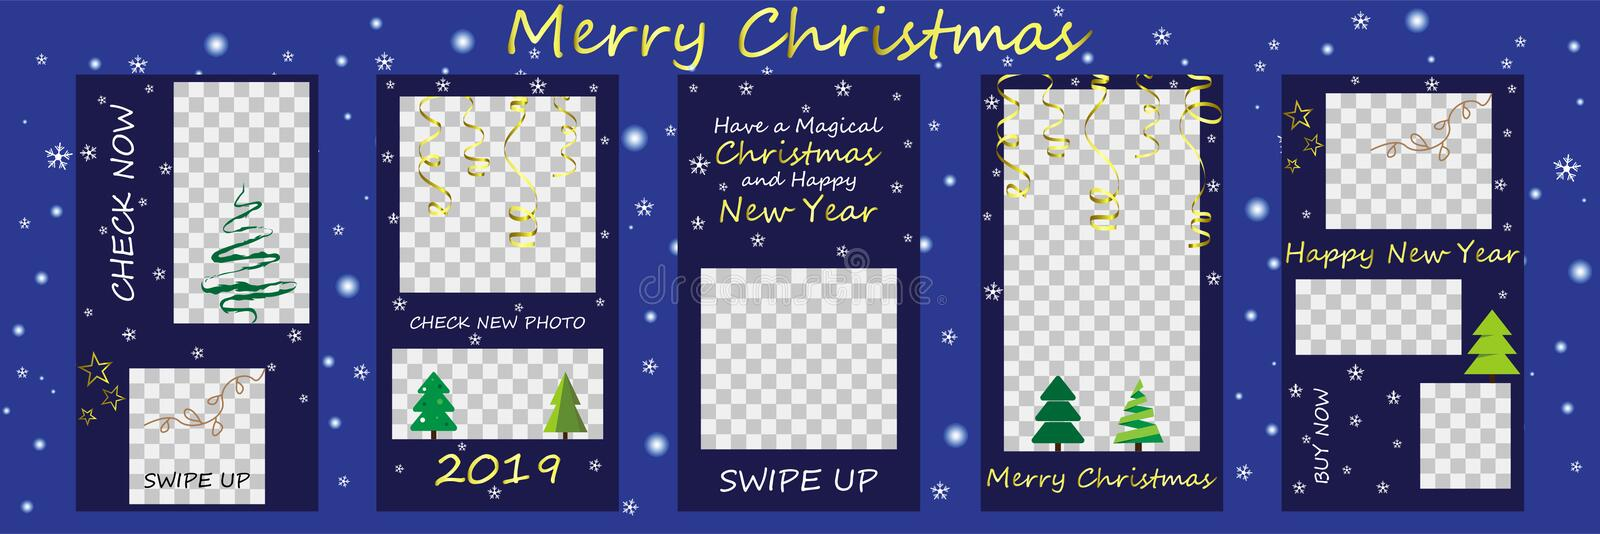 Merry Christmas and Happy New Year Sale, Instagram Stories template. Streaming. vector illustration